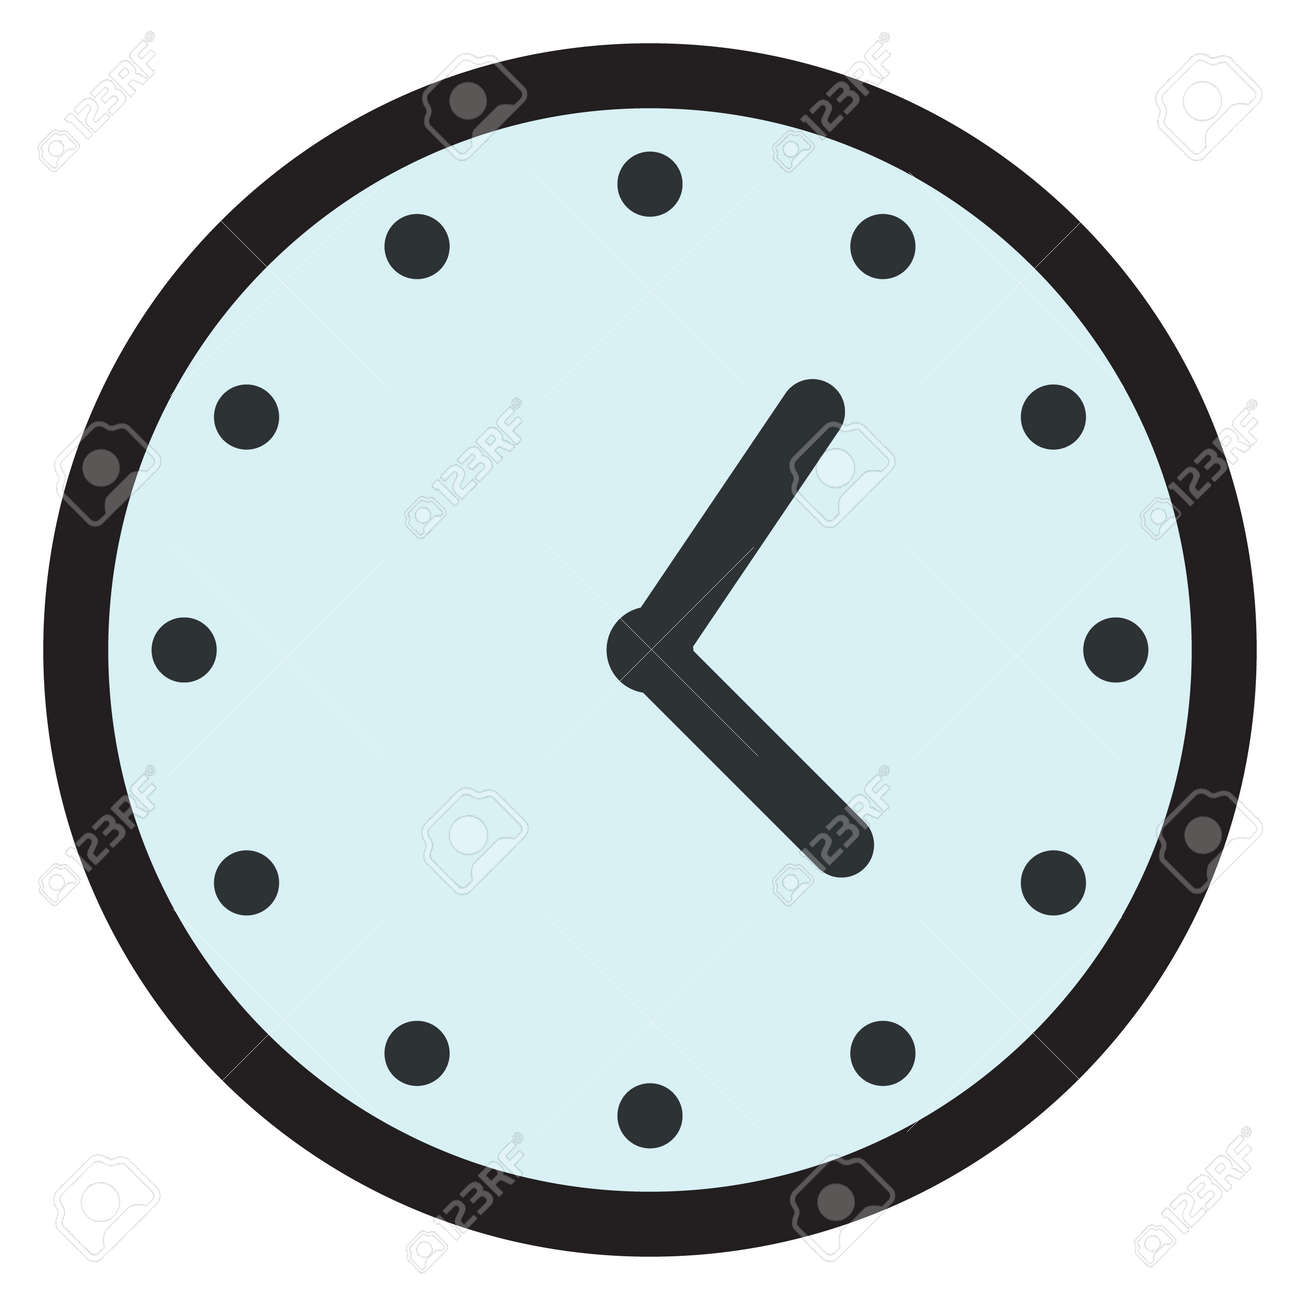 Wall round analog clock face, watch icon, vector illustration